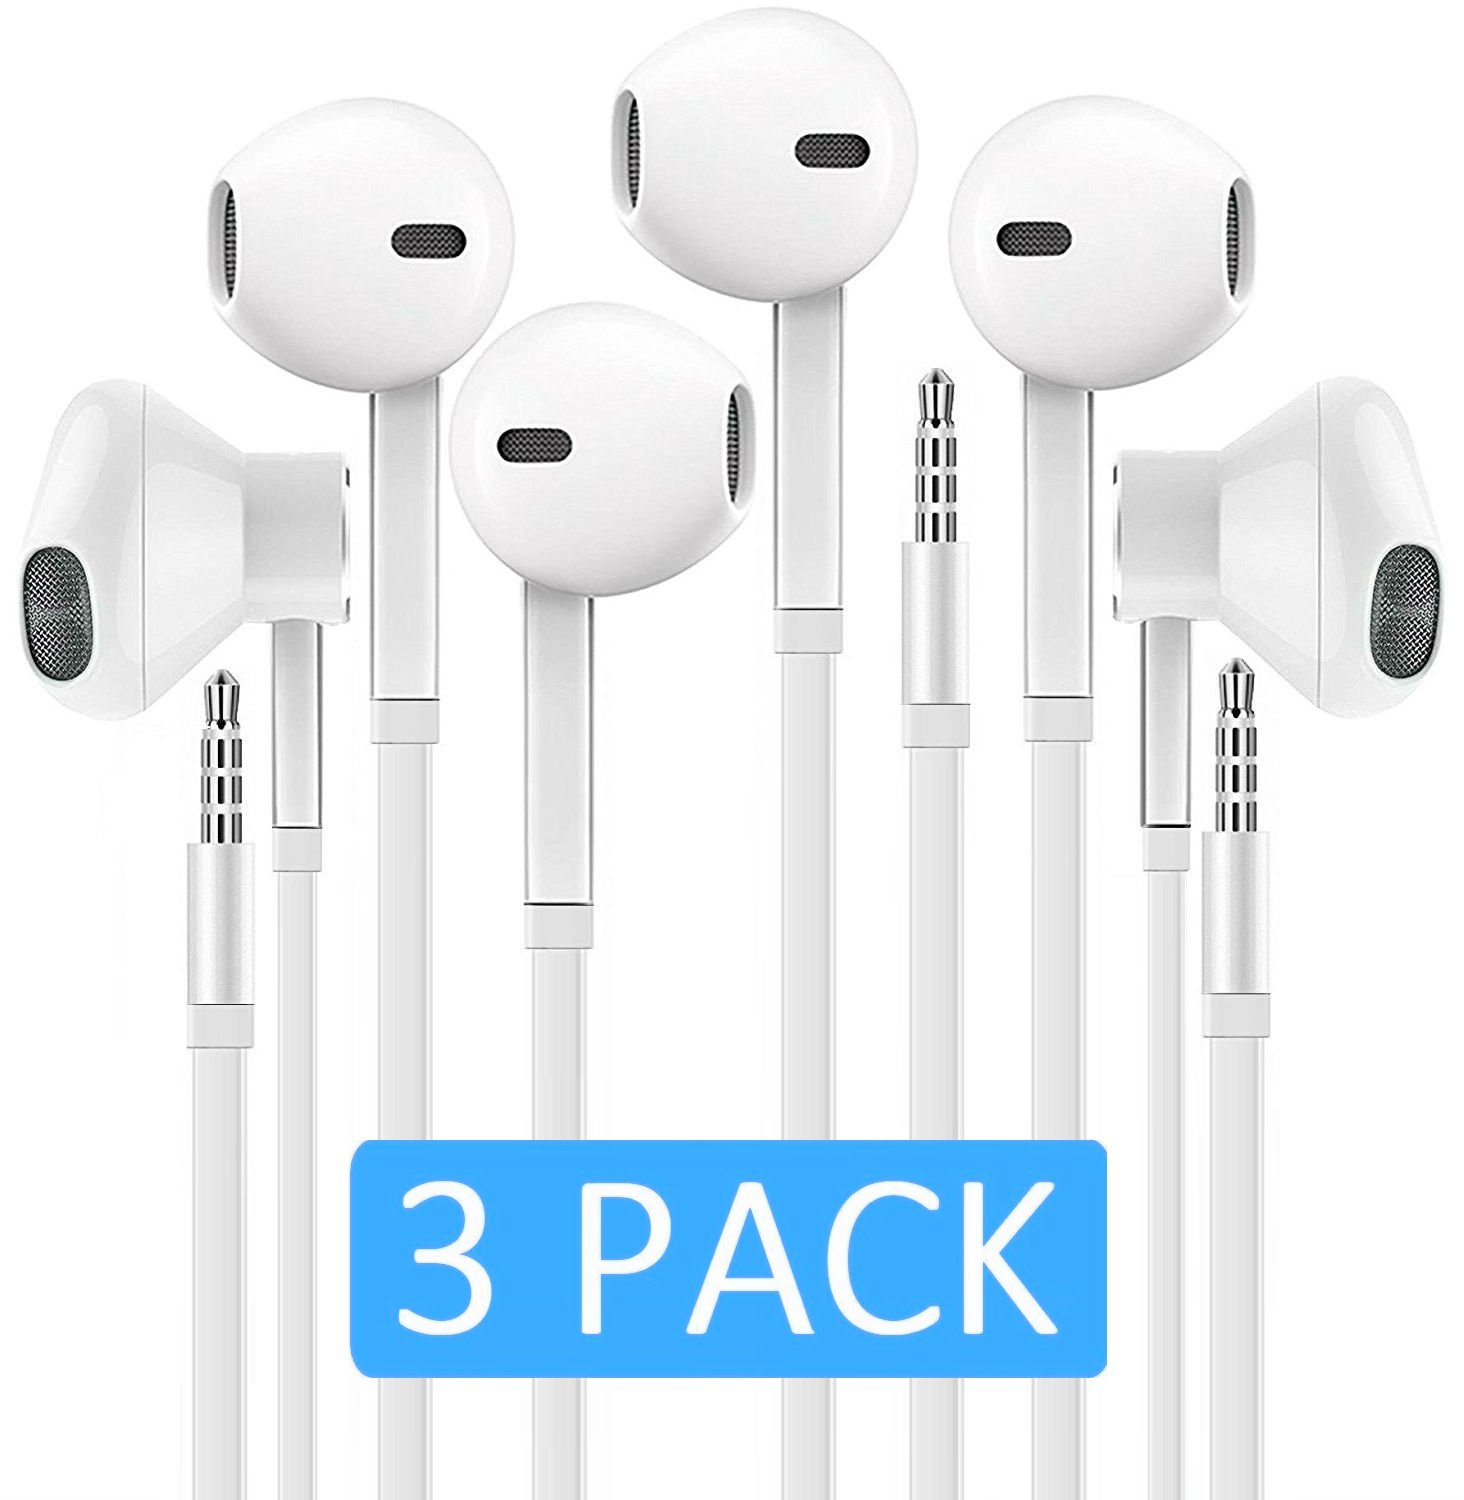 Headphones with Microphone, Certified PowerBoost In-Ear 3.5mm Noise Cancelling Sport Stereo Earphones Headset for iPhone iPad iPod Laptop Tablet Android LG HTC Smartphones (White) 3 PACK